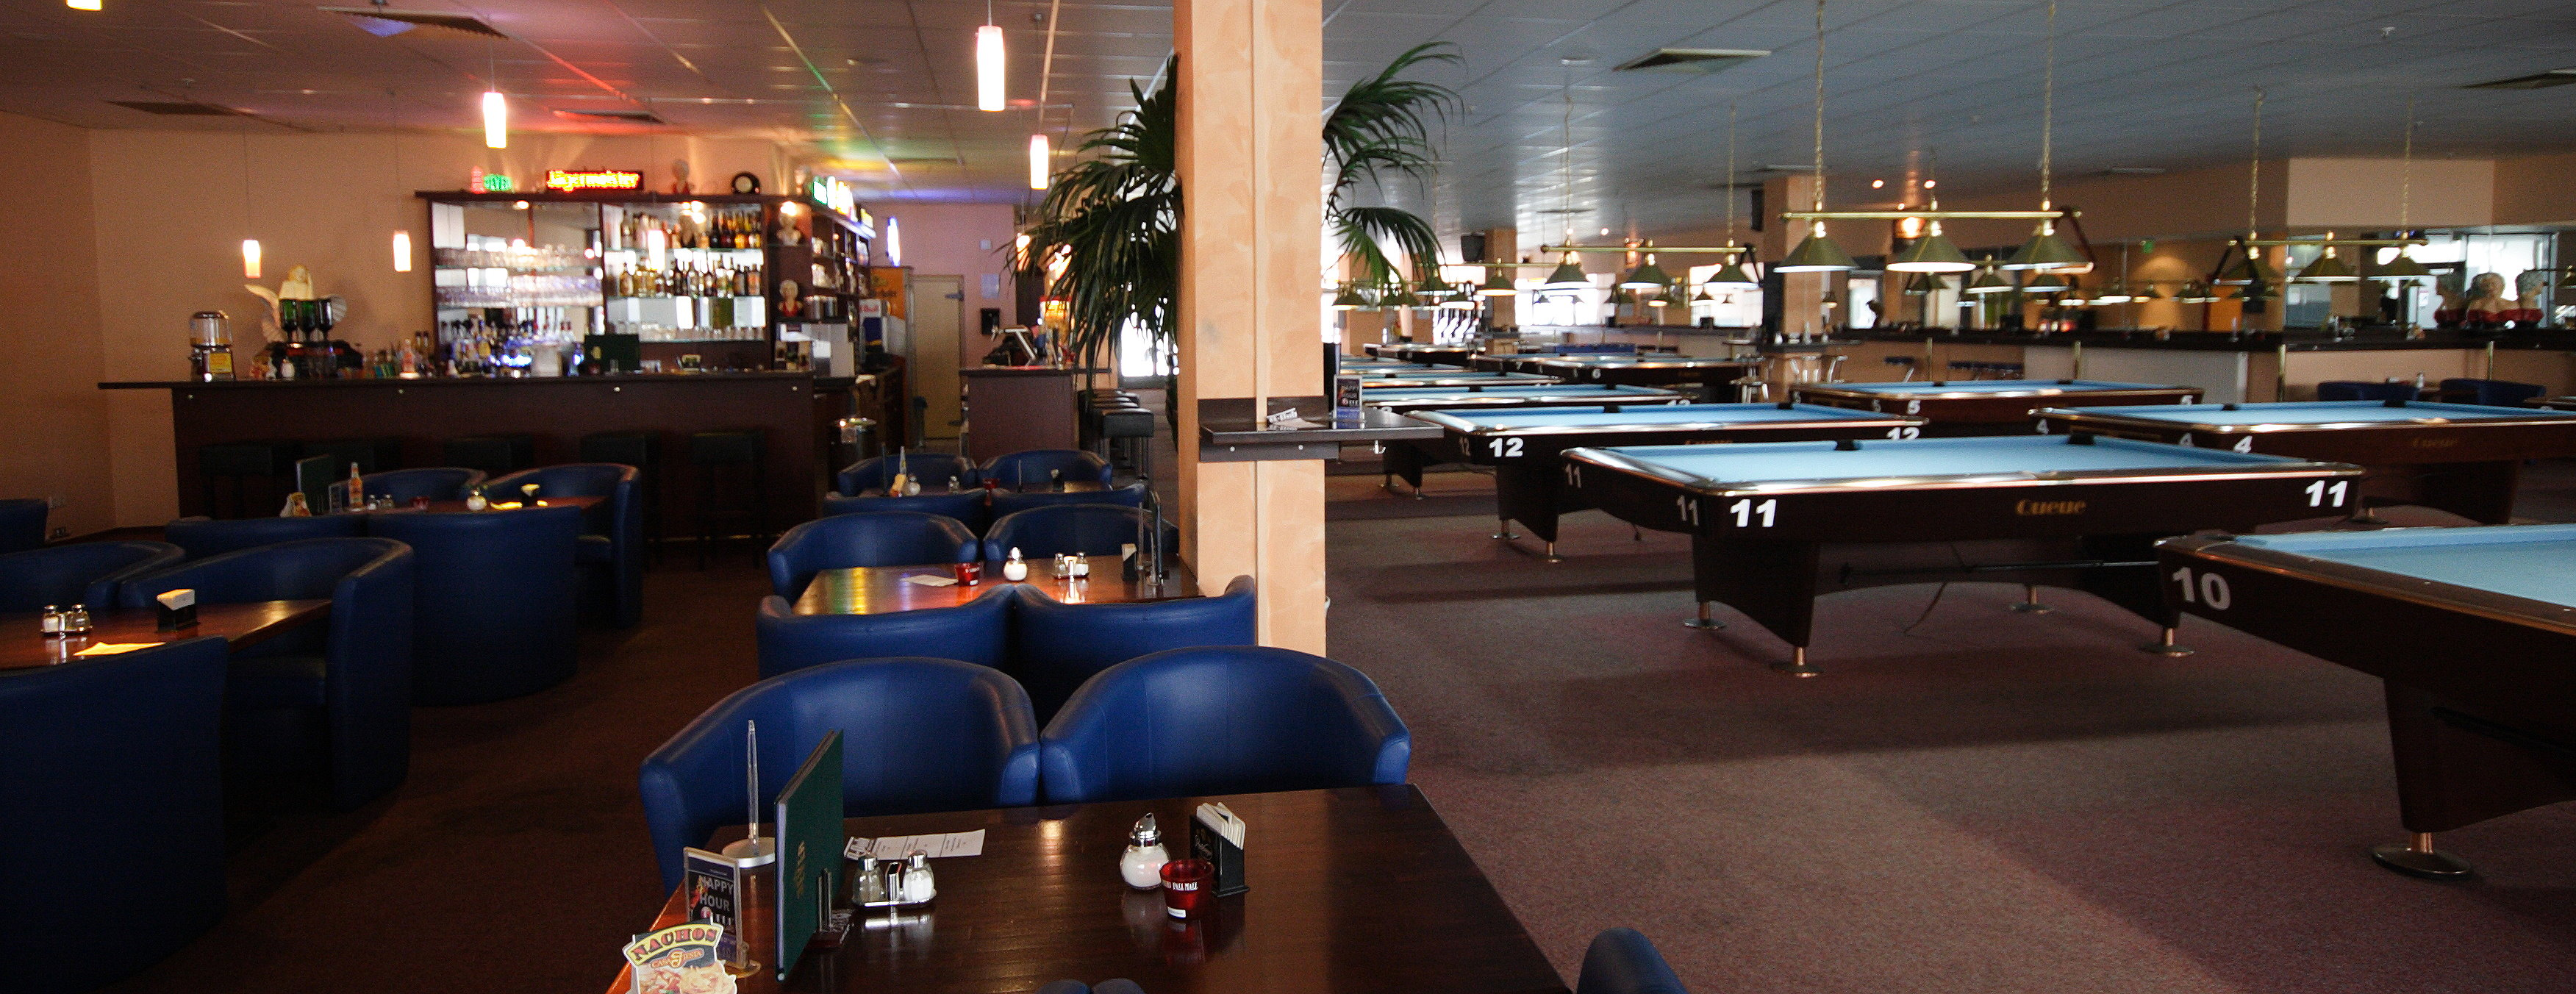 poolhall 2a